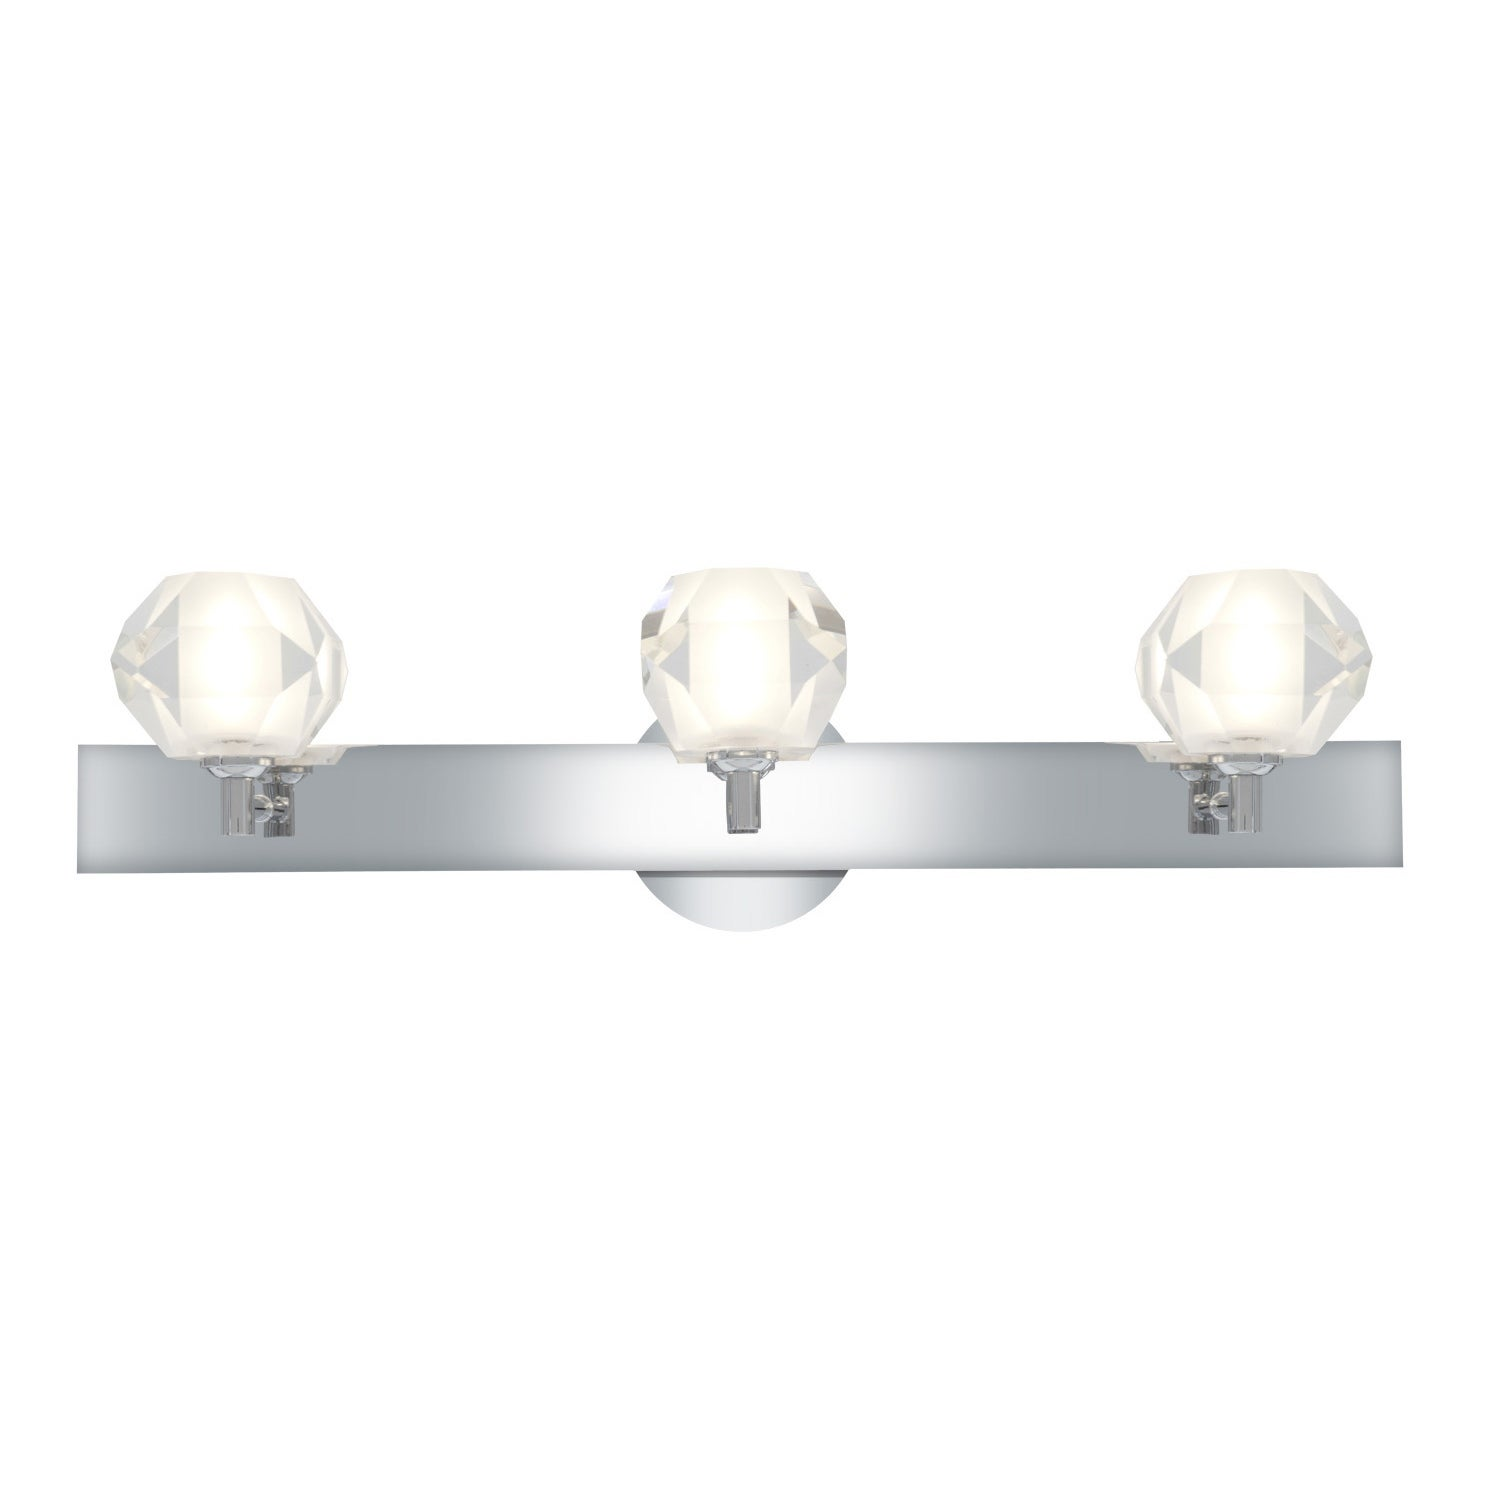 Access Glas'e 3-light Chrome Diamond Vanity Fixture